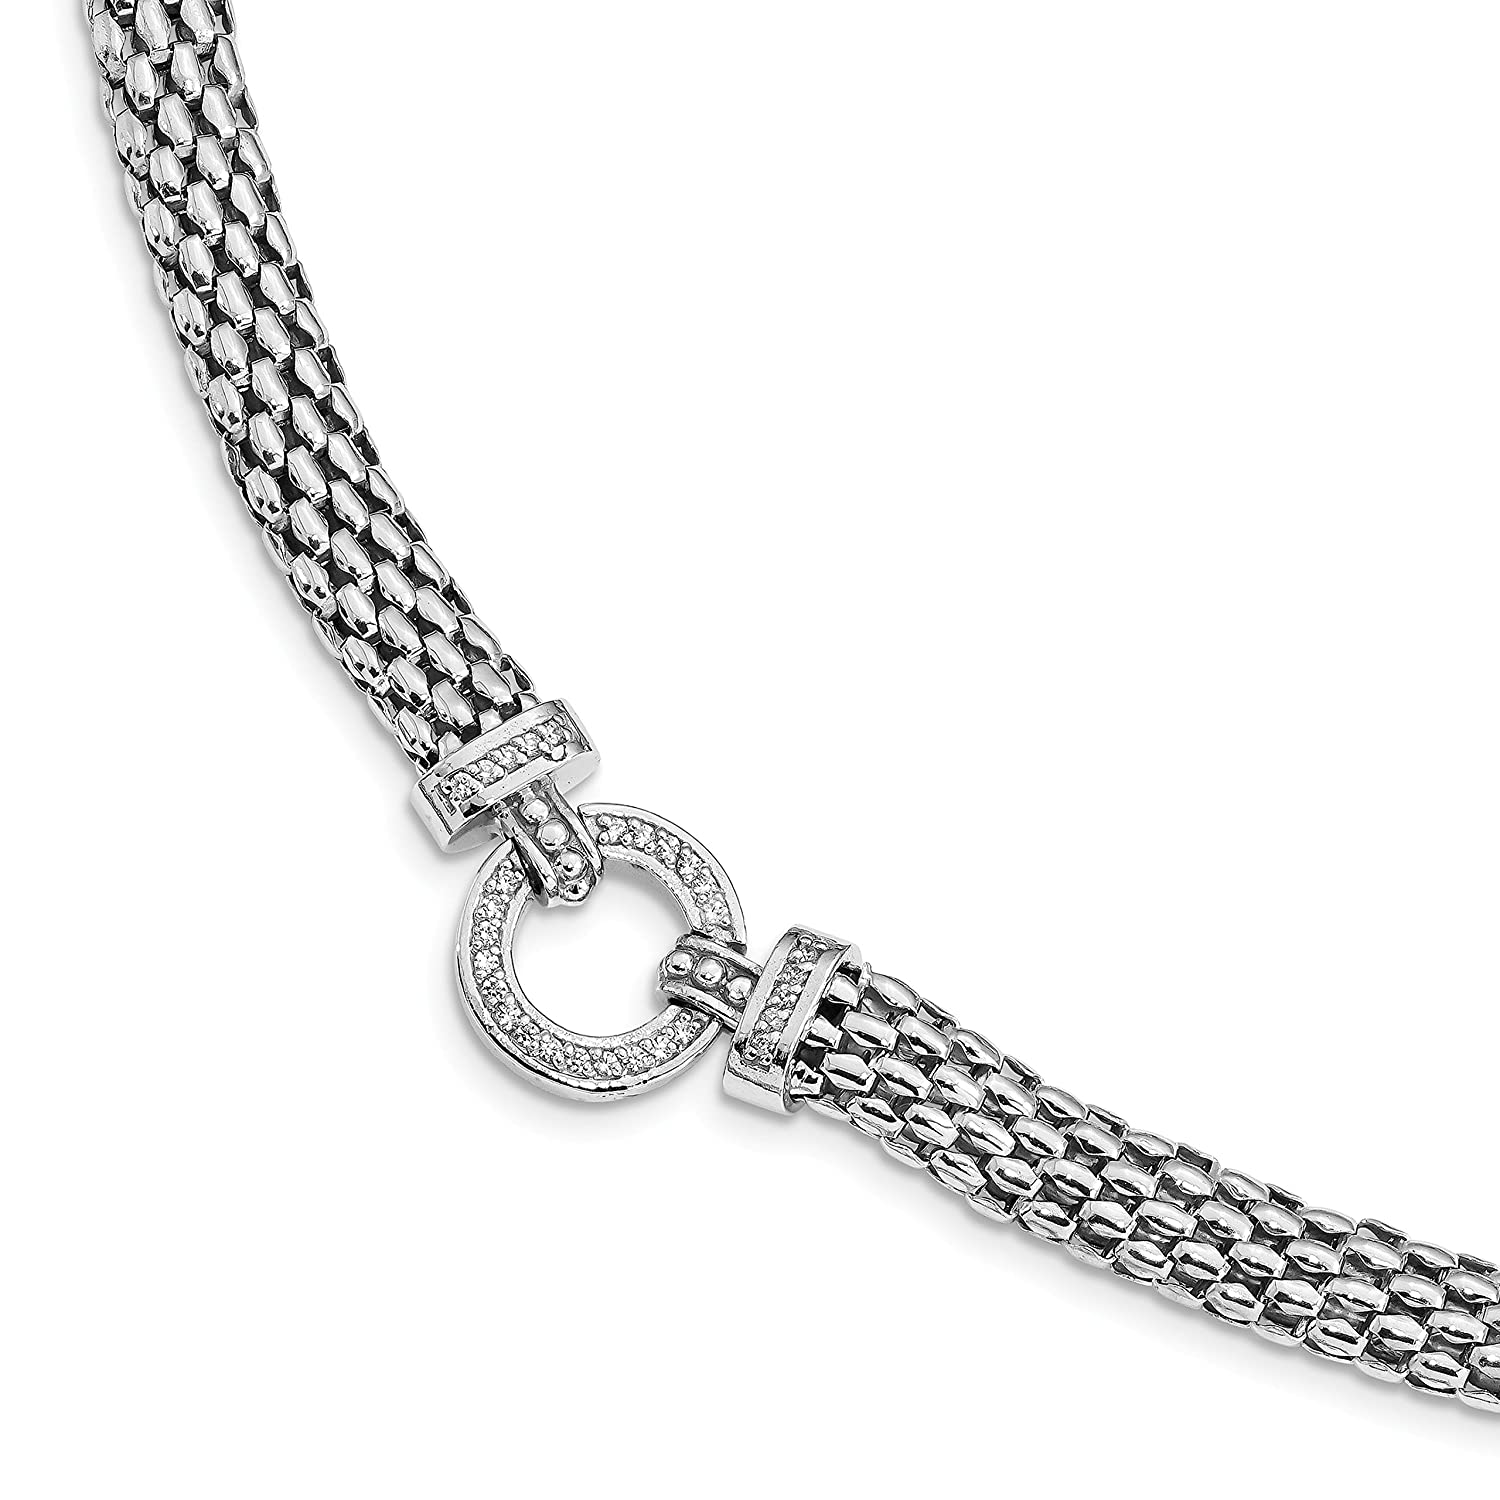 Bracelet 925 Sterling Silver Rhodium-Plated Polished Cubic Zirconia Mesh 7.5 to 17.75in Link Necklace